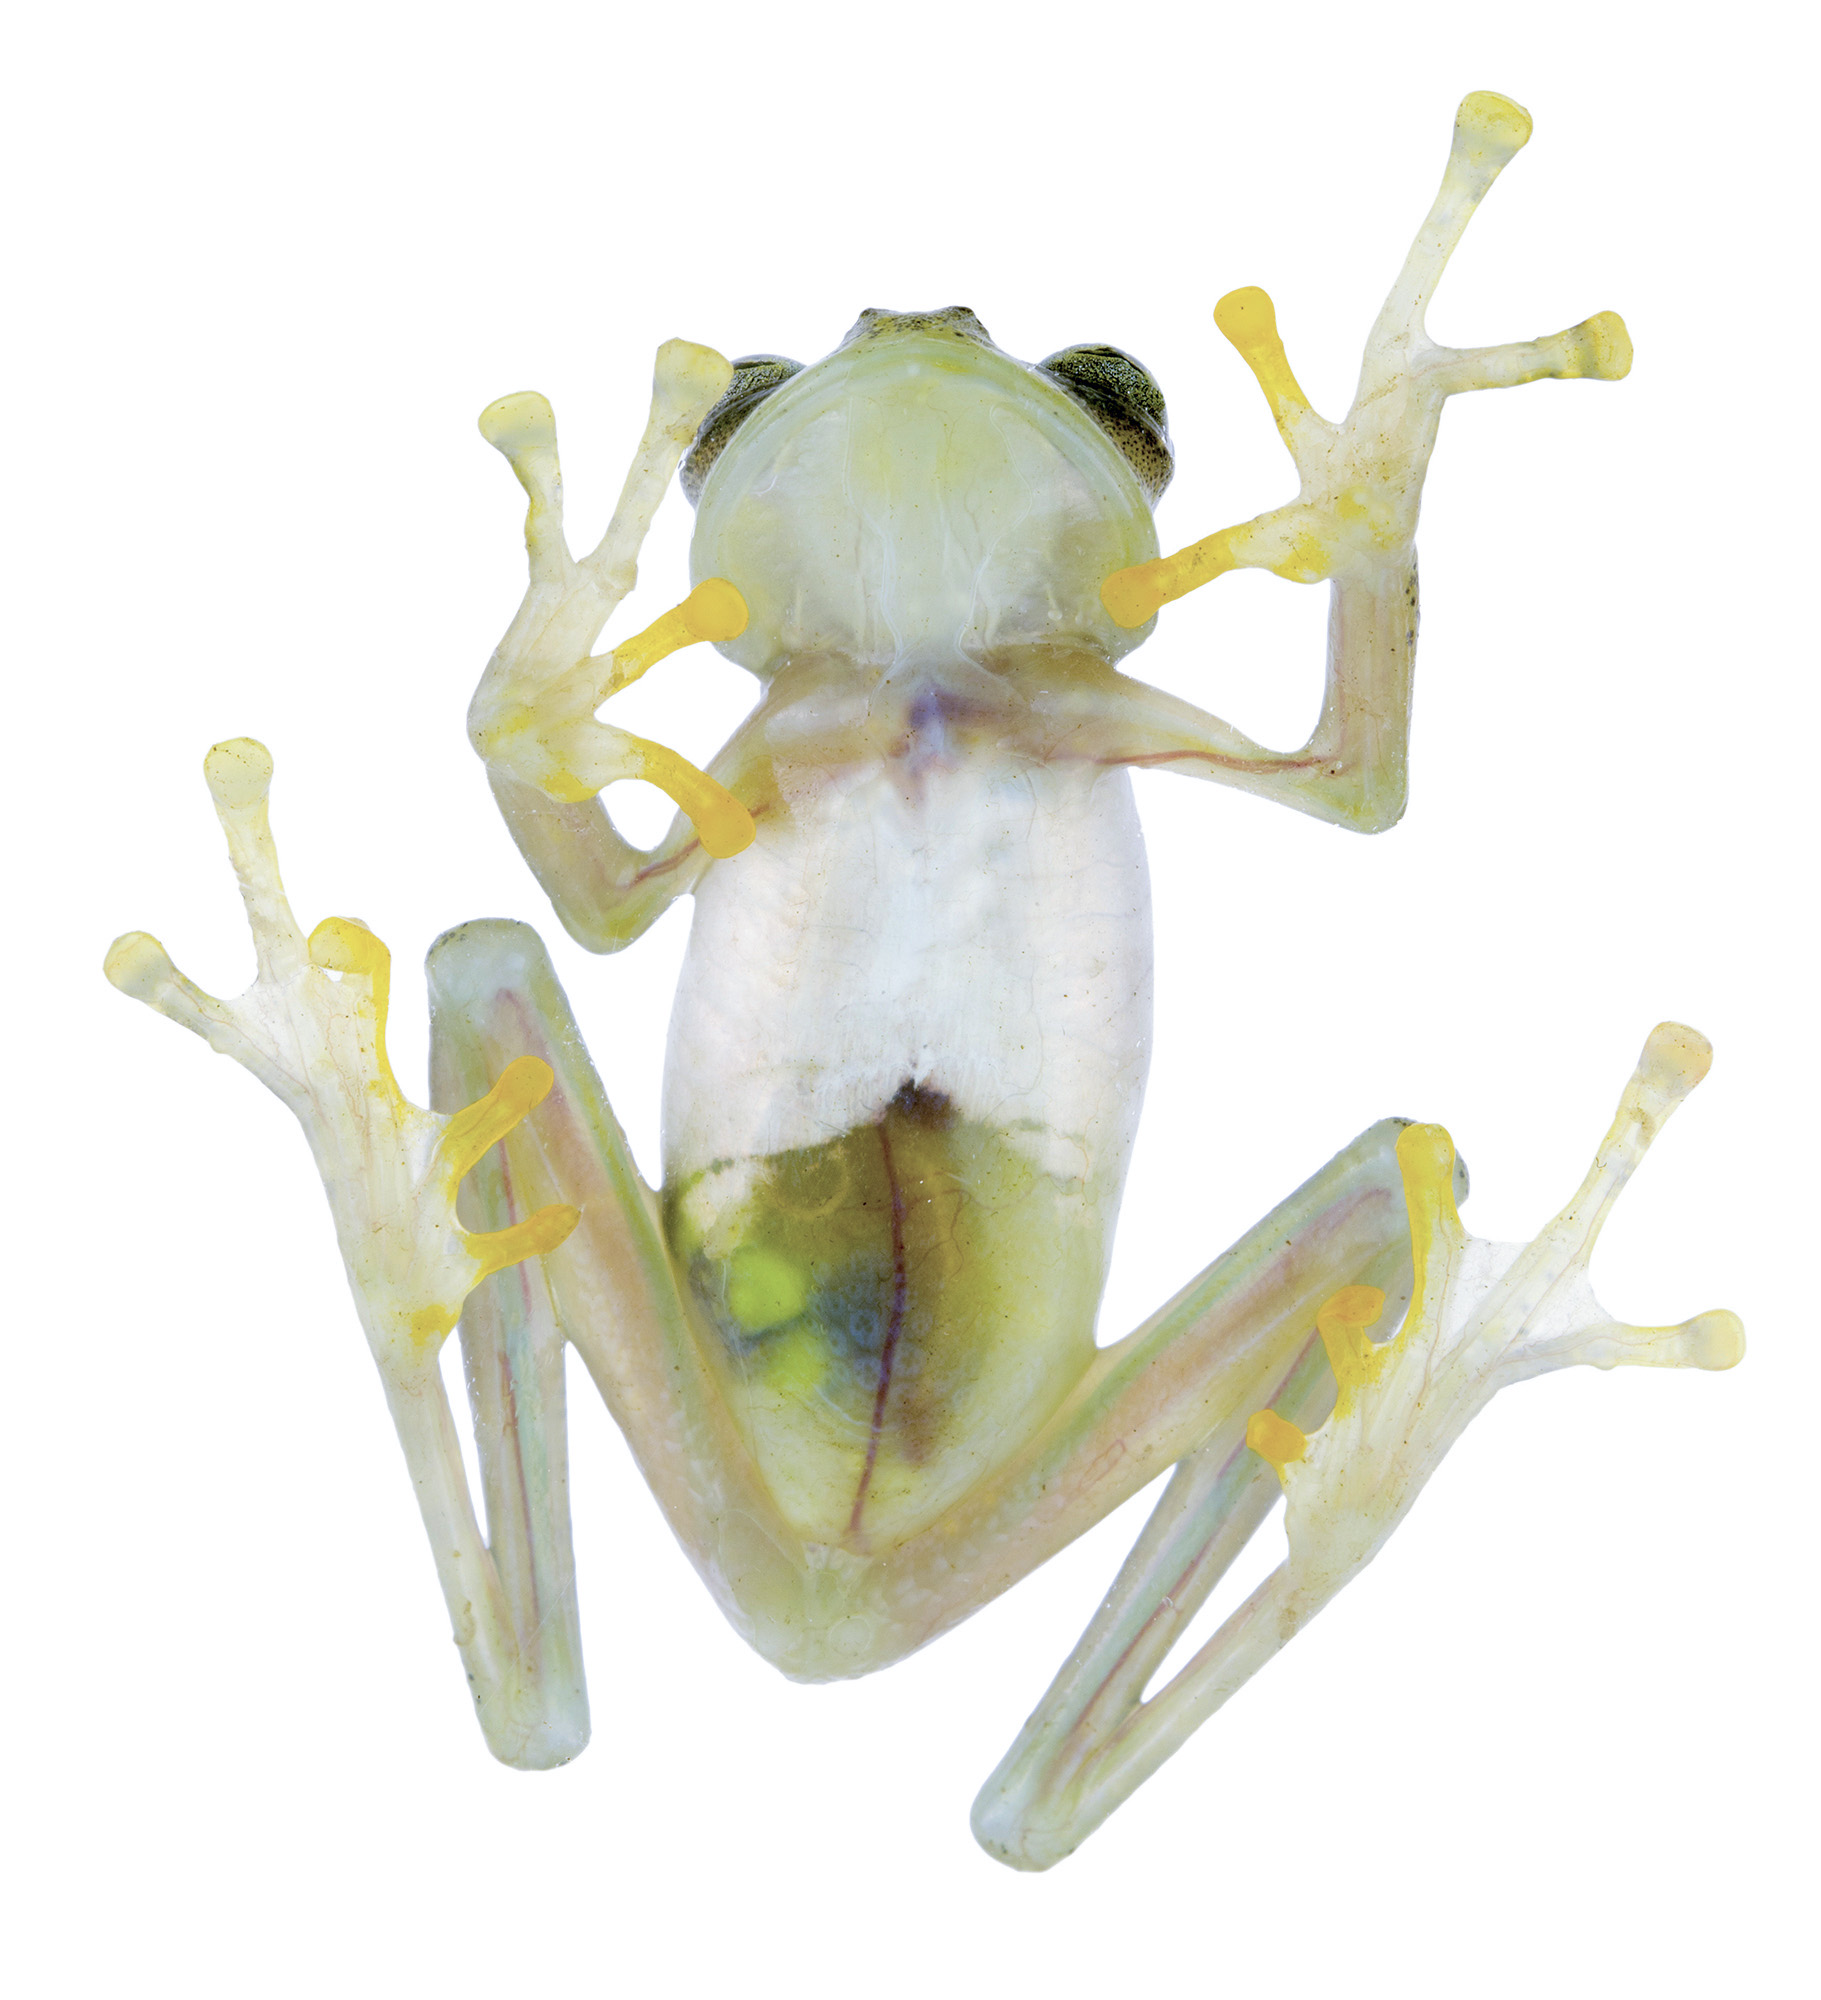 A new glass frog has been discovered in our Manduriacu Reserve